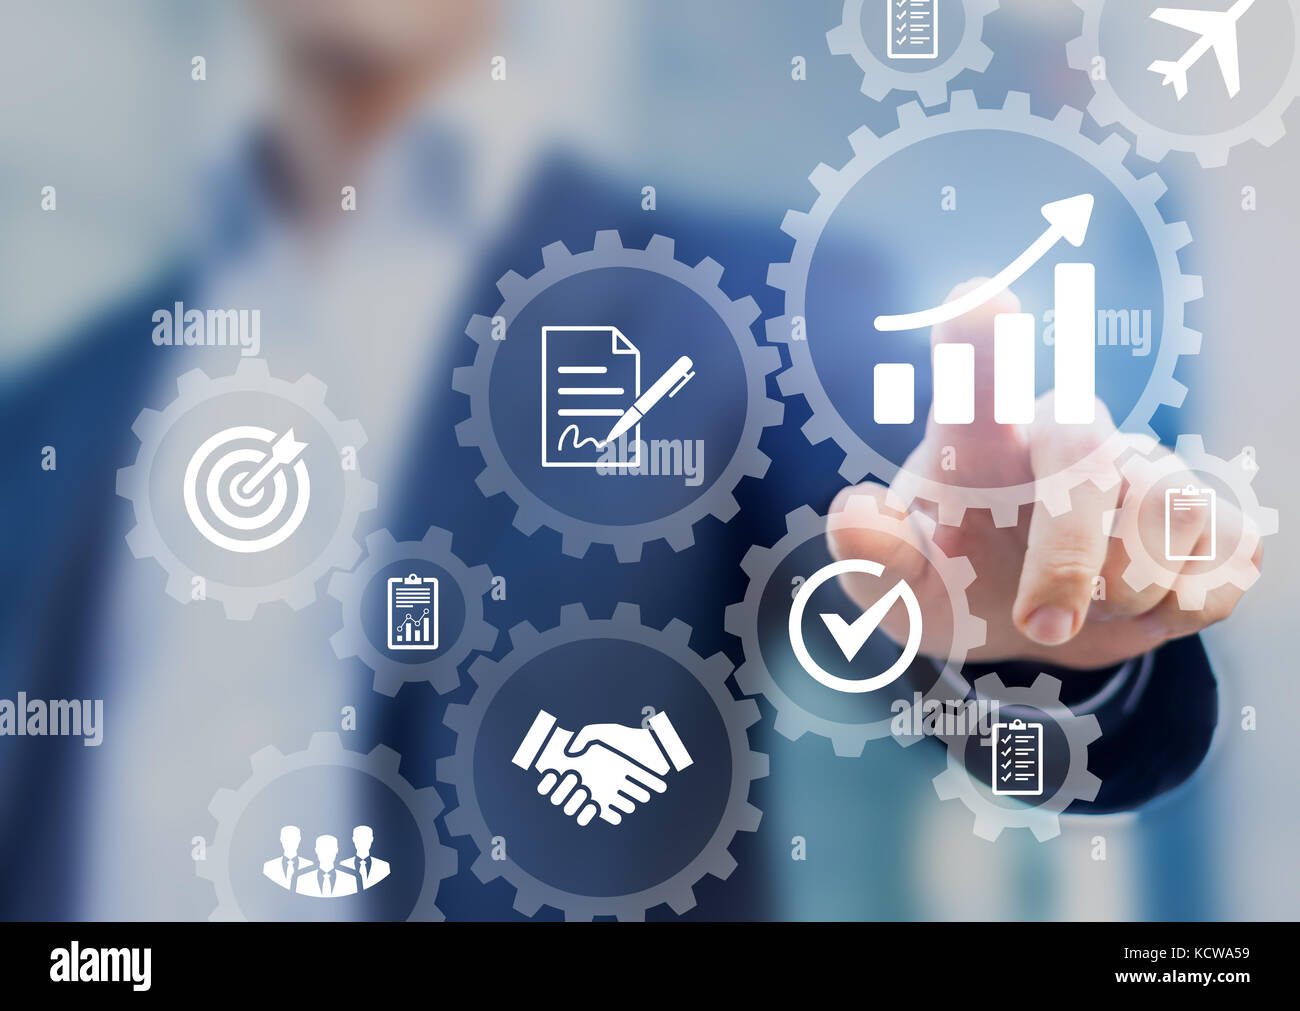 Business process management and automation concept with icons of hiring workflow, document validation, information - Stock Image